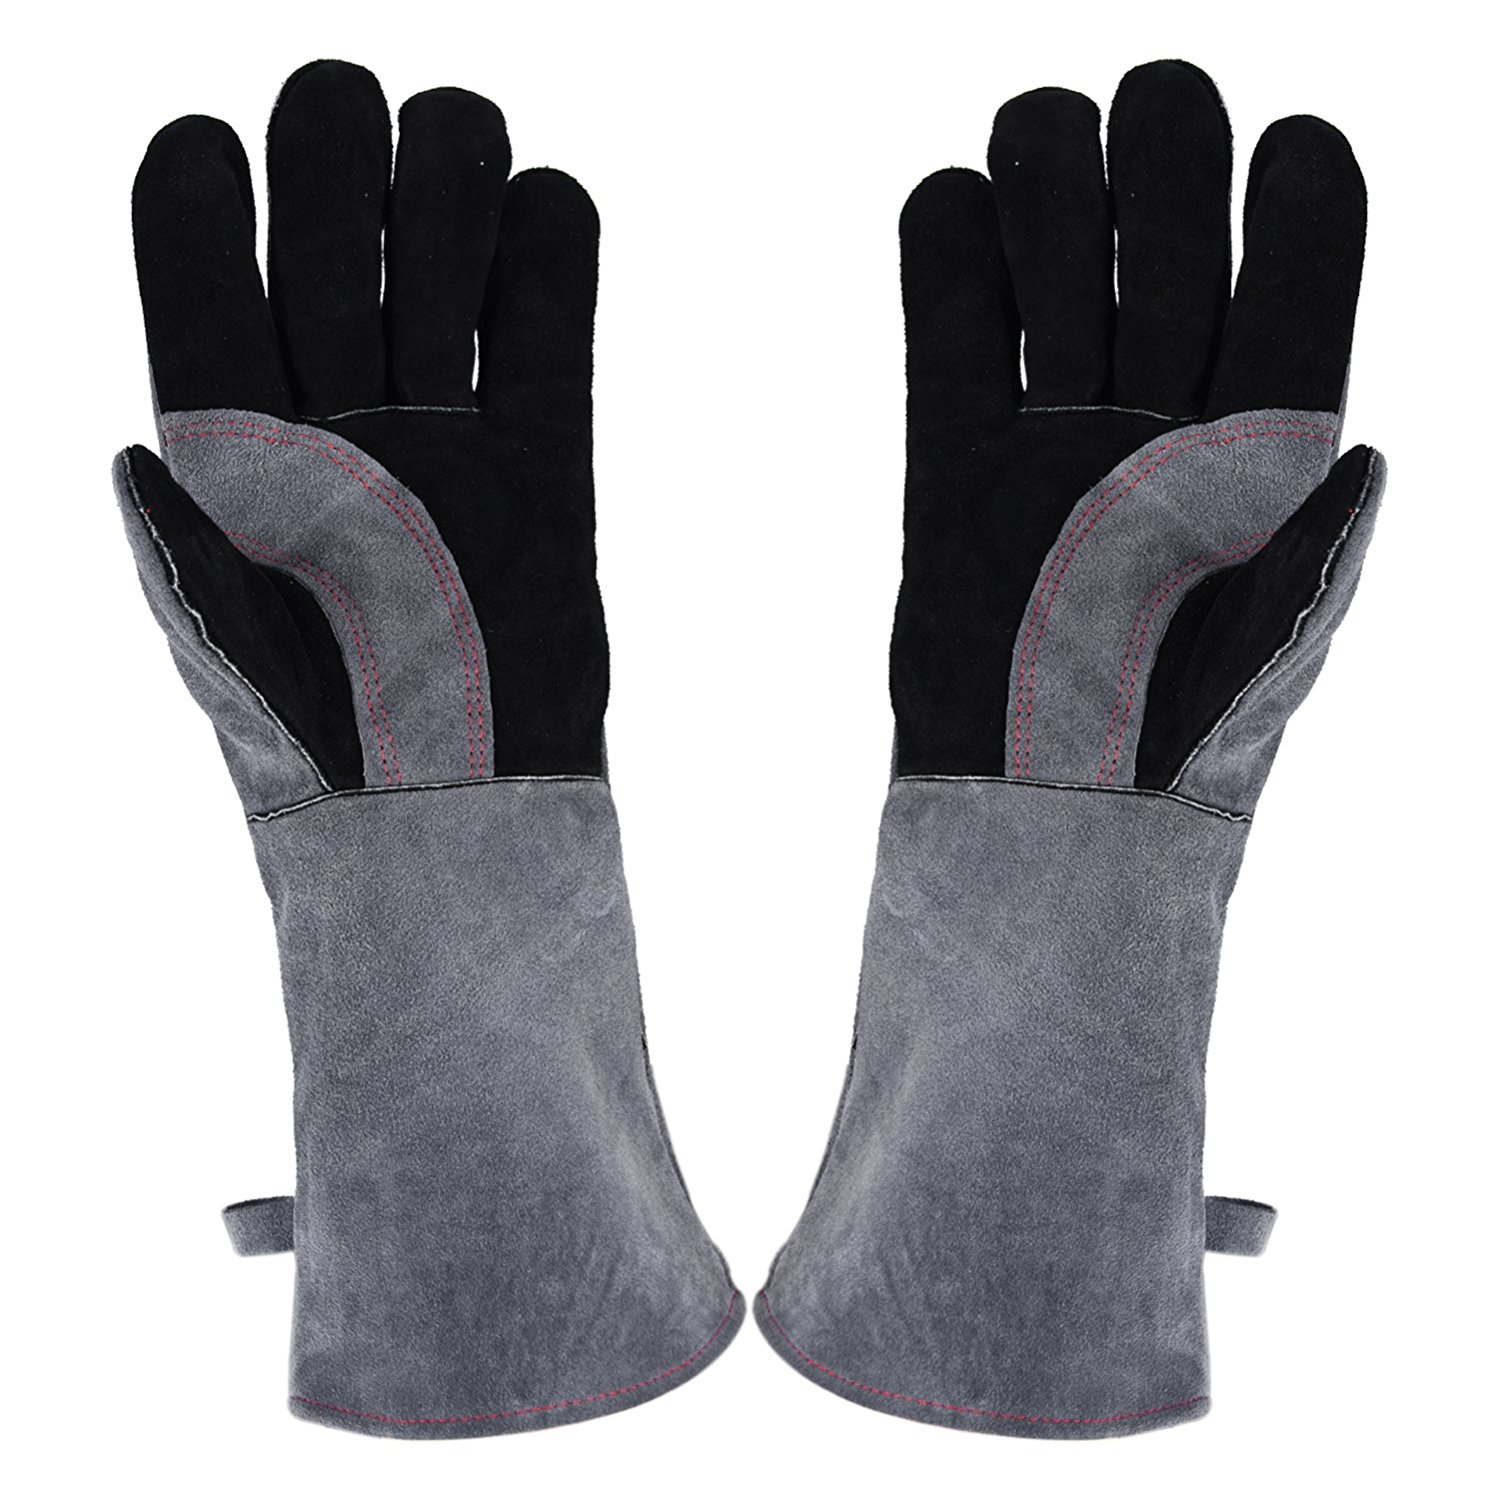 Gauntlets Suede Heat Resistant  One size Lead Mould Making Protective Gloves